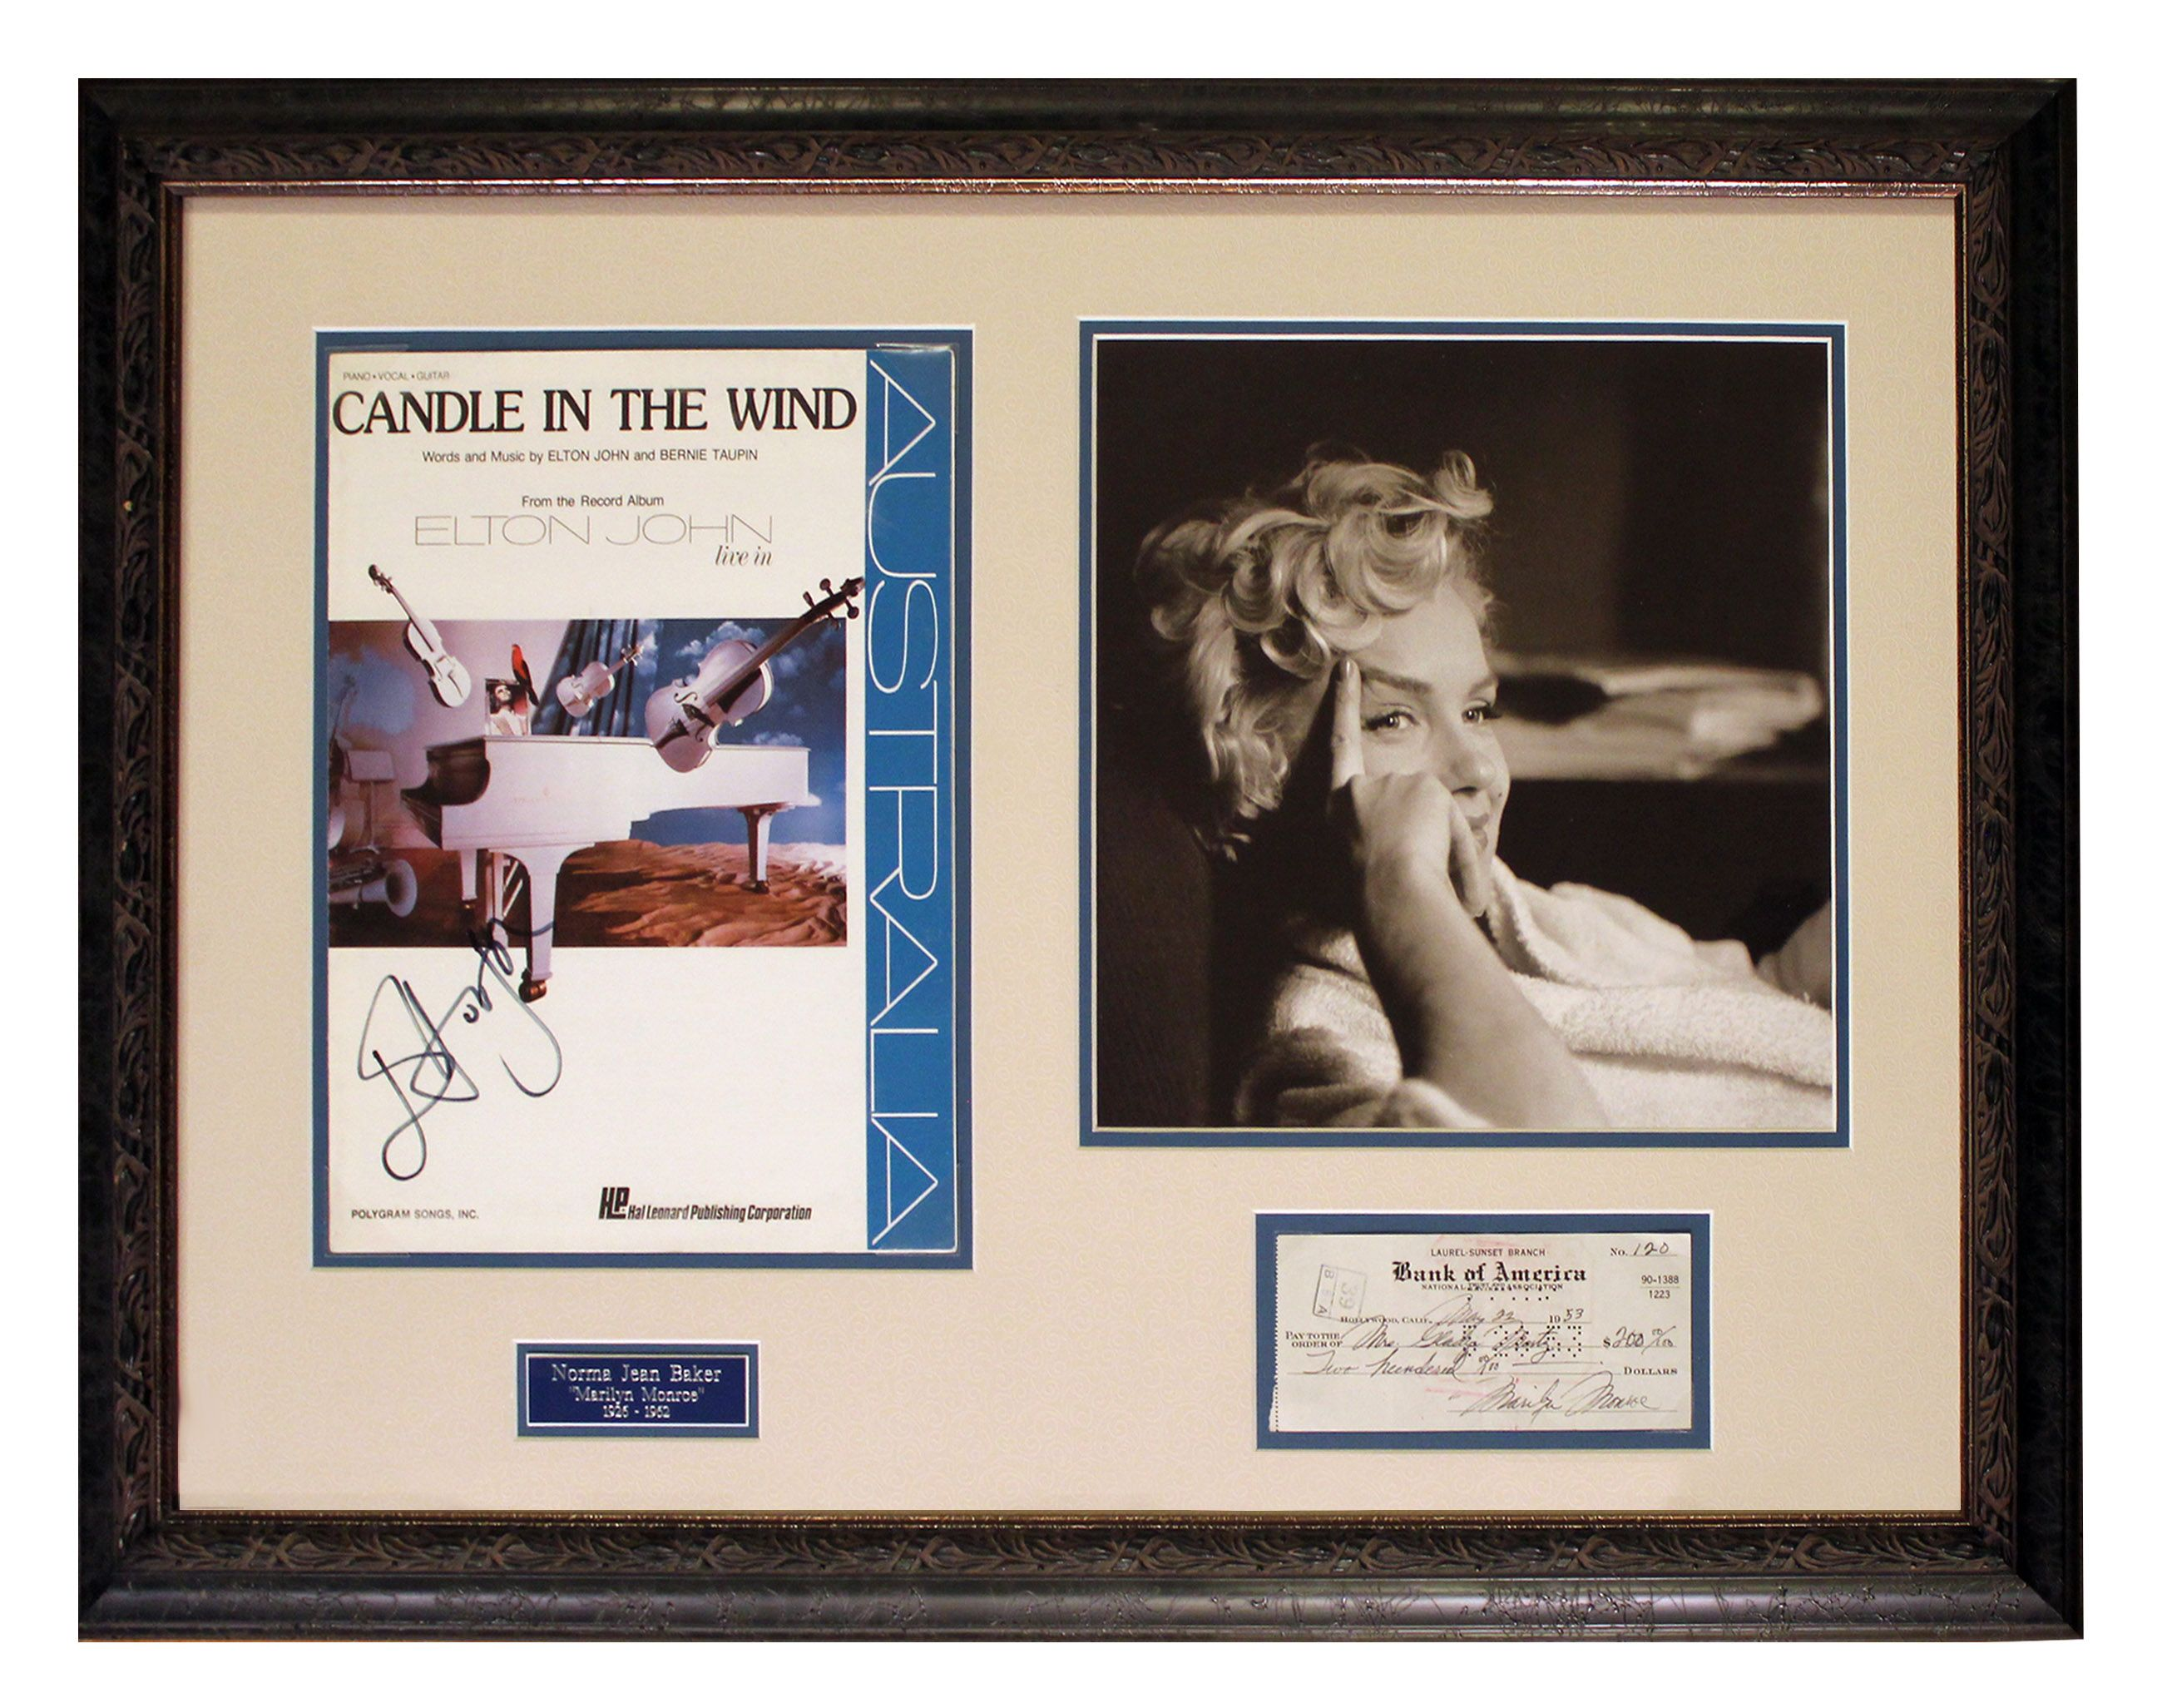 Marilyn Monroe Autograph Check Written and Signed by Marilyn Monroe